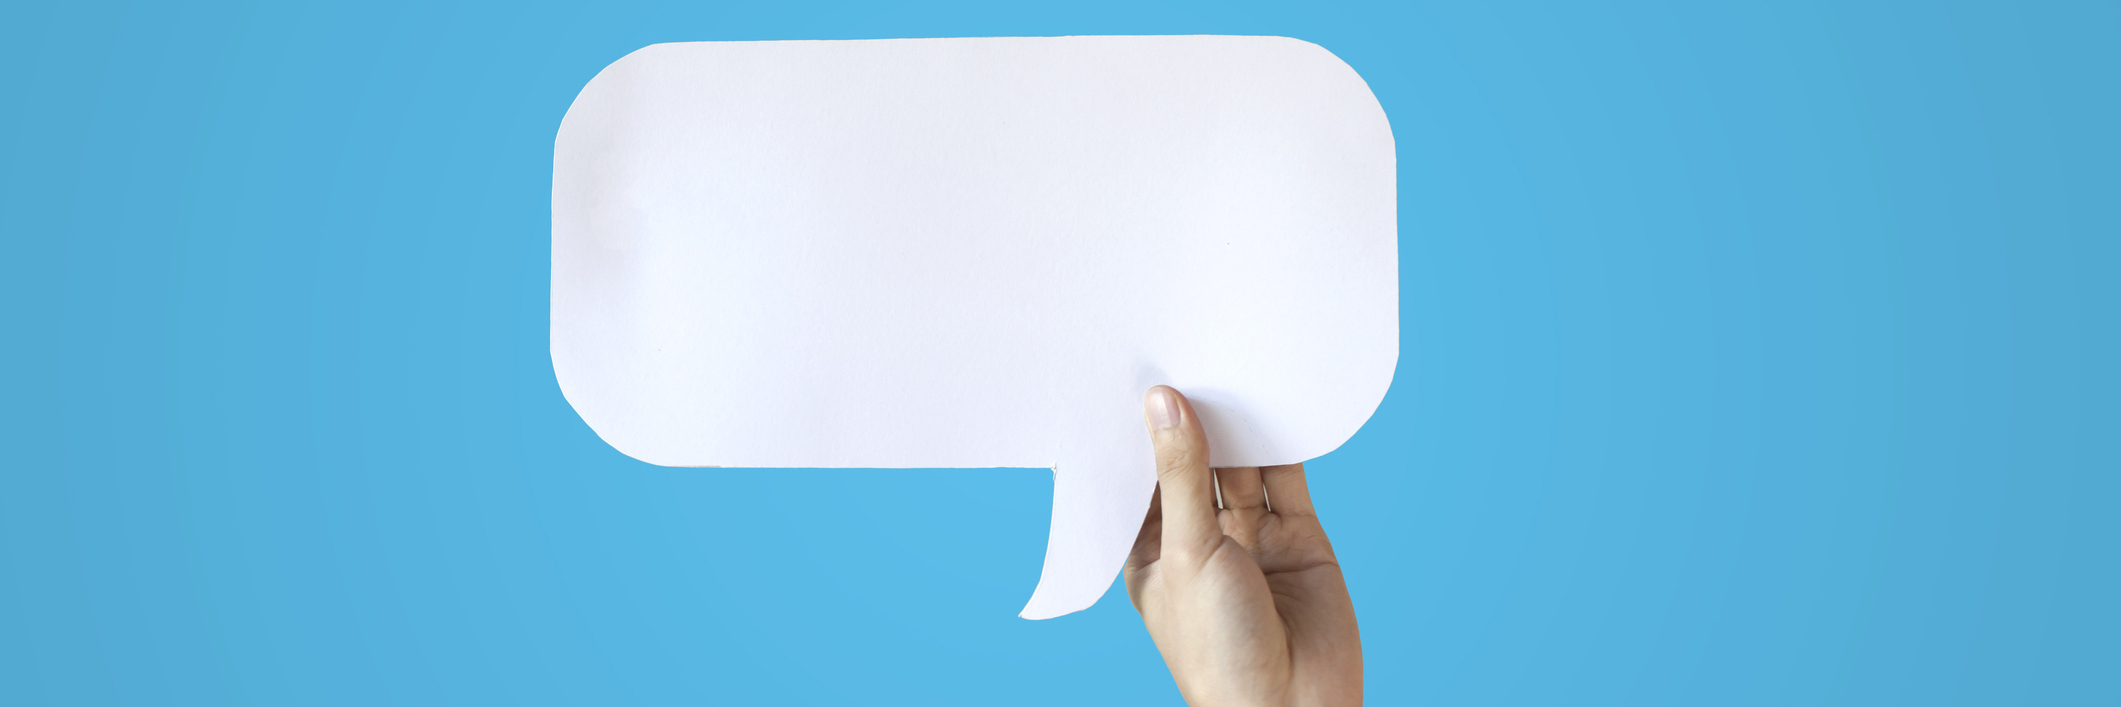 Speech bubble being held in front of blue background.